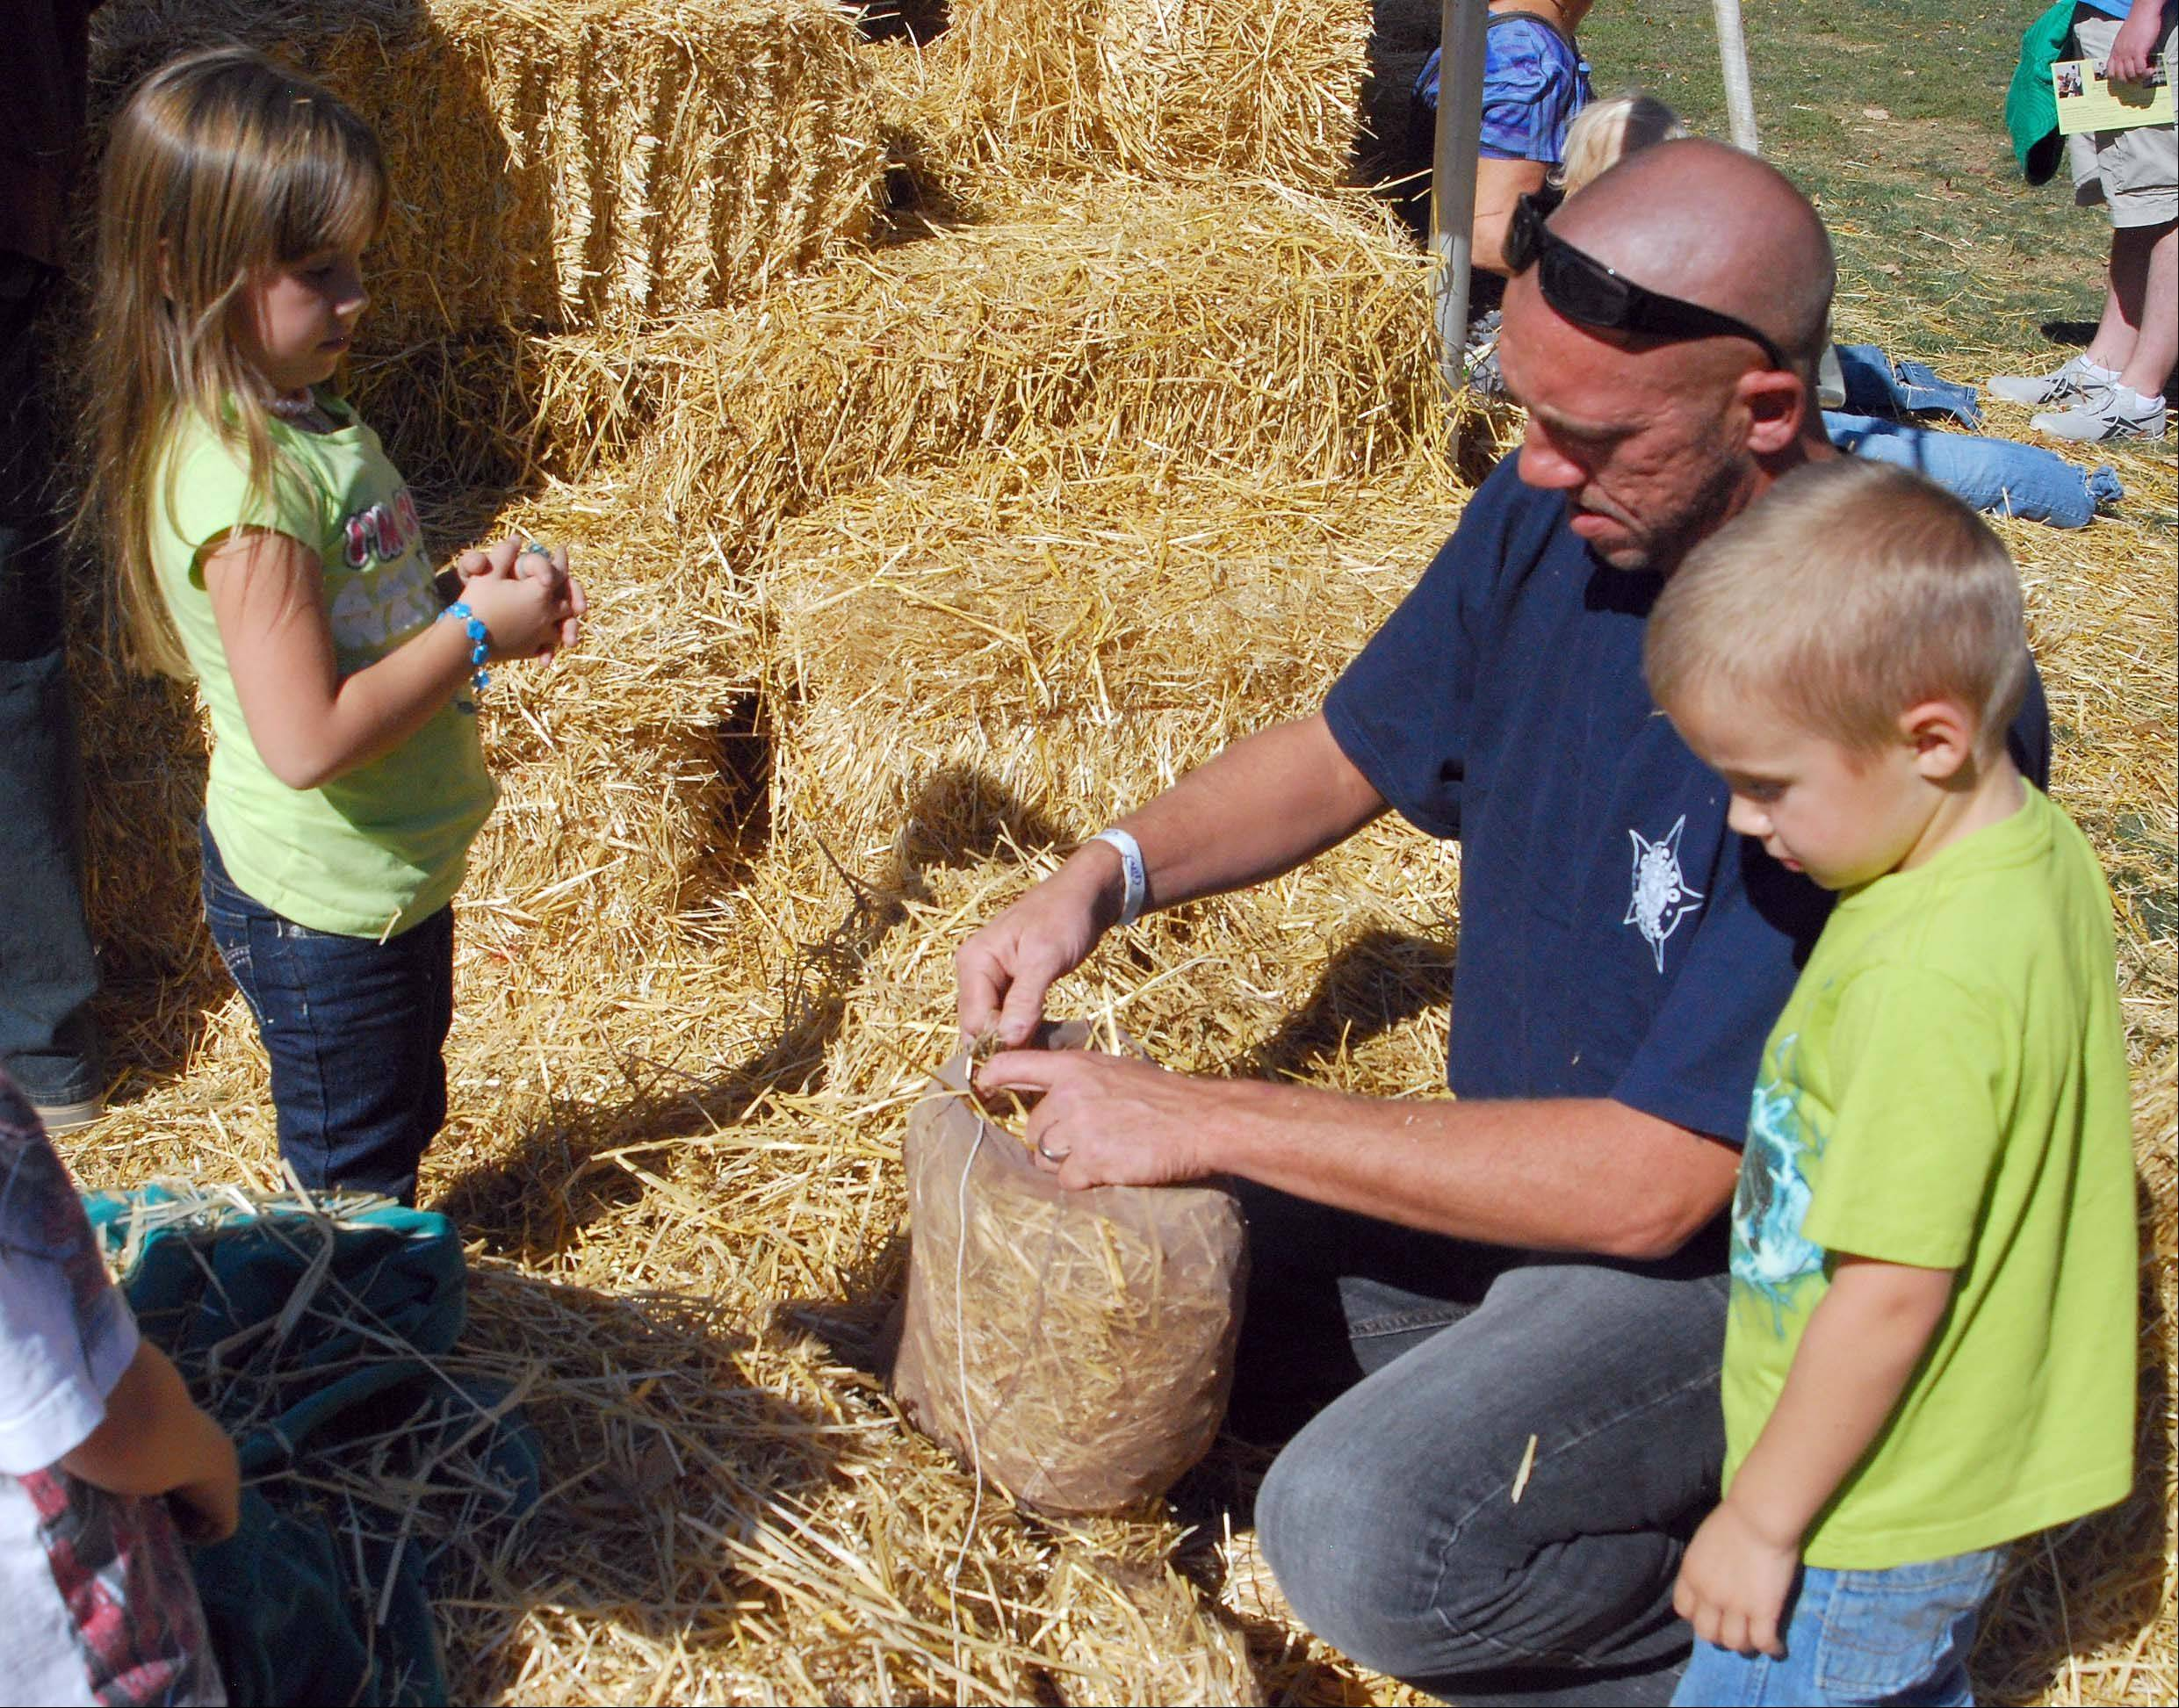 Michael Graiber helps his children Kendall, 5, and Devin, 4, stuff straw into stockings to build a scarecrow Sunday during the third and final day of Huntley Fall Fest at Deicke Park.